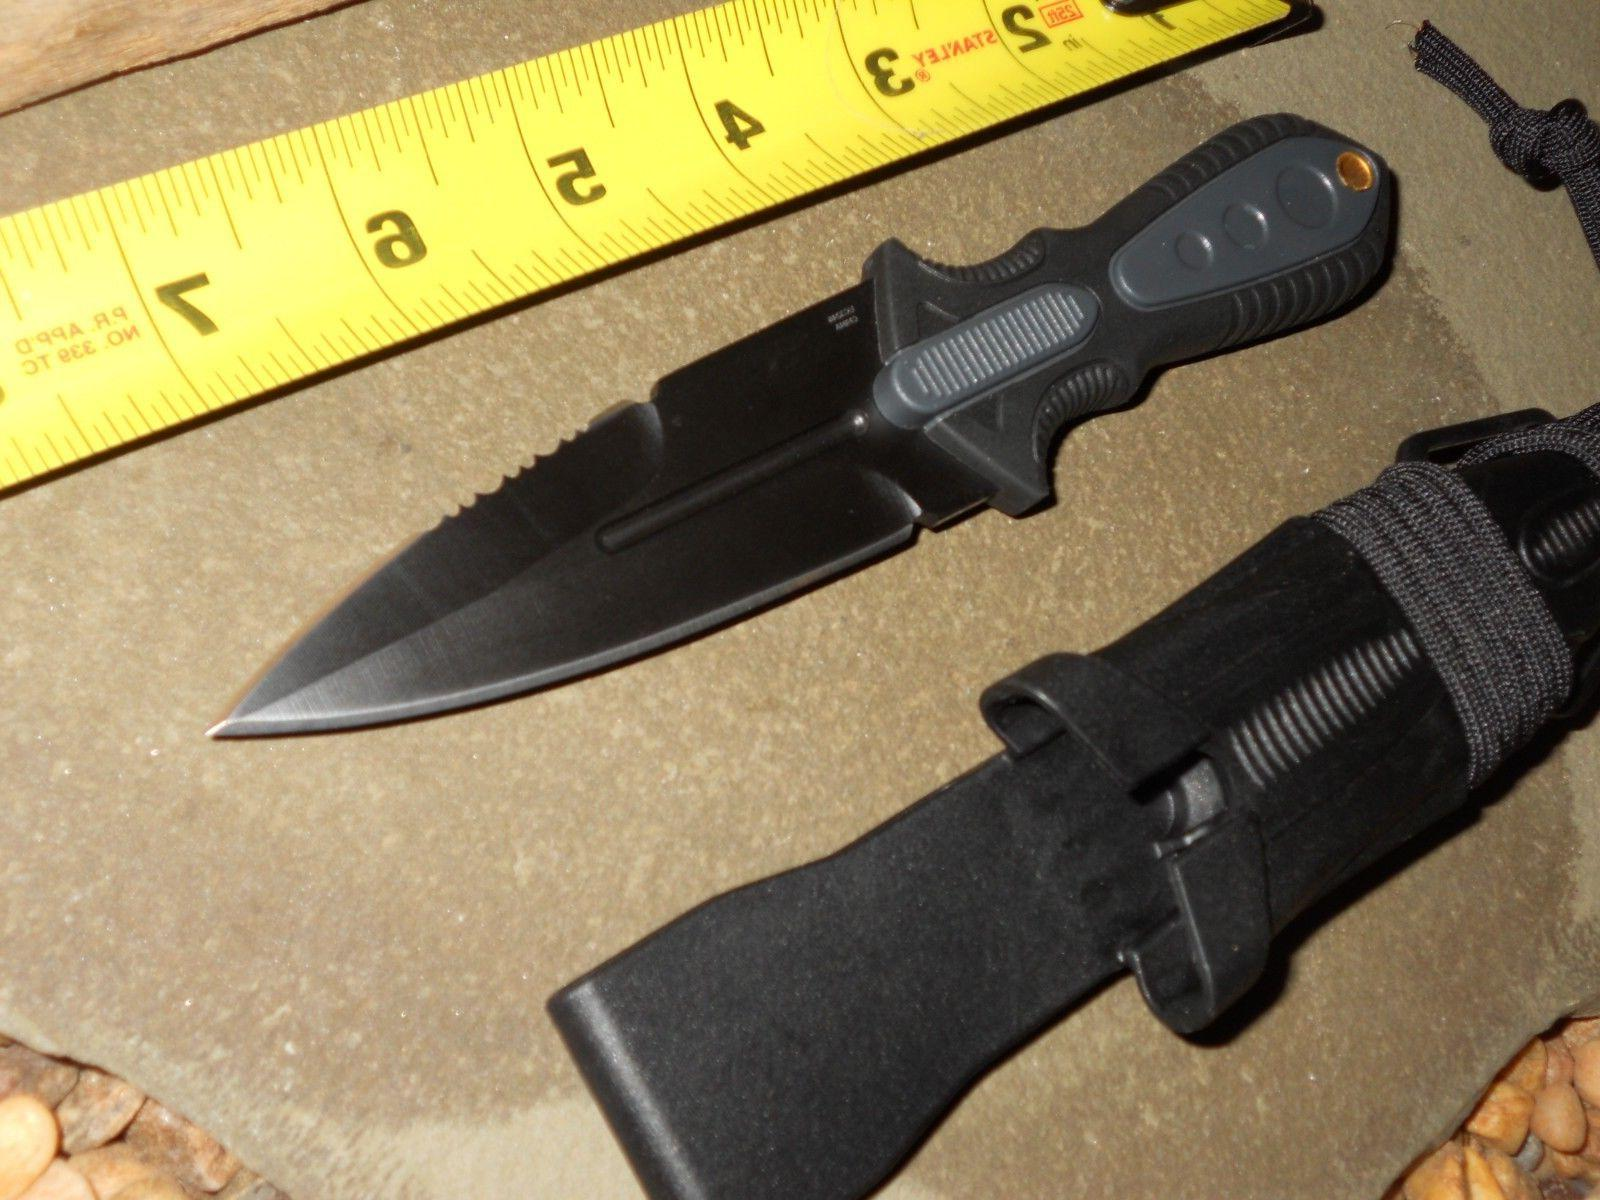 United Cutler/Belt/Boot/Neck/Knife/Bowie/Concealable/Kydex/Full tang/Survival